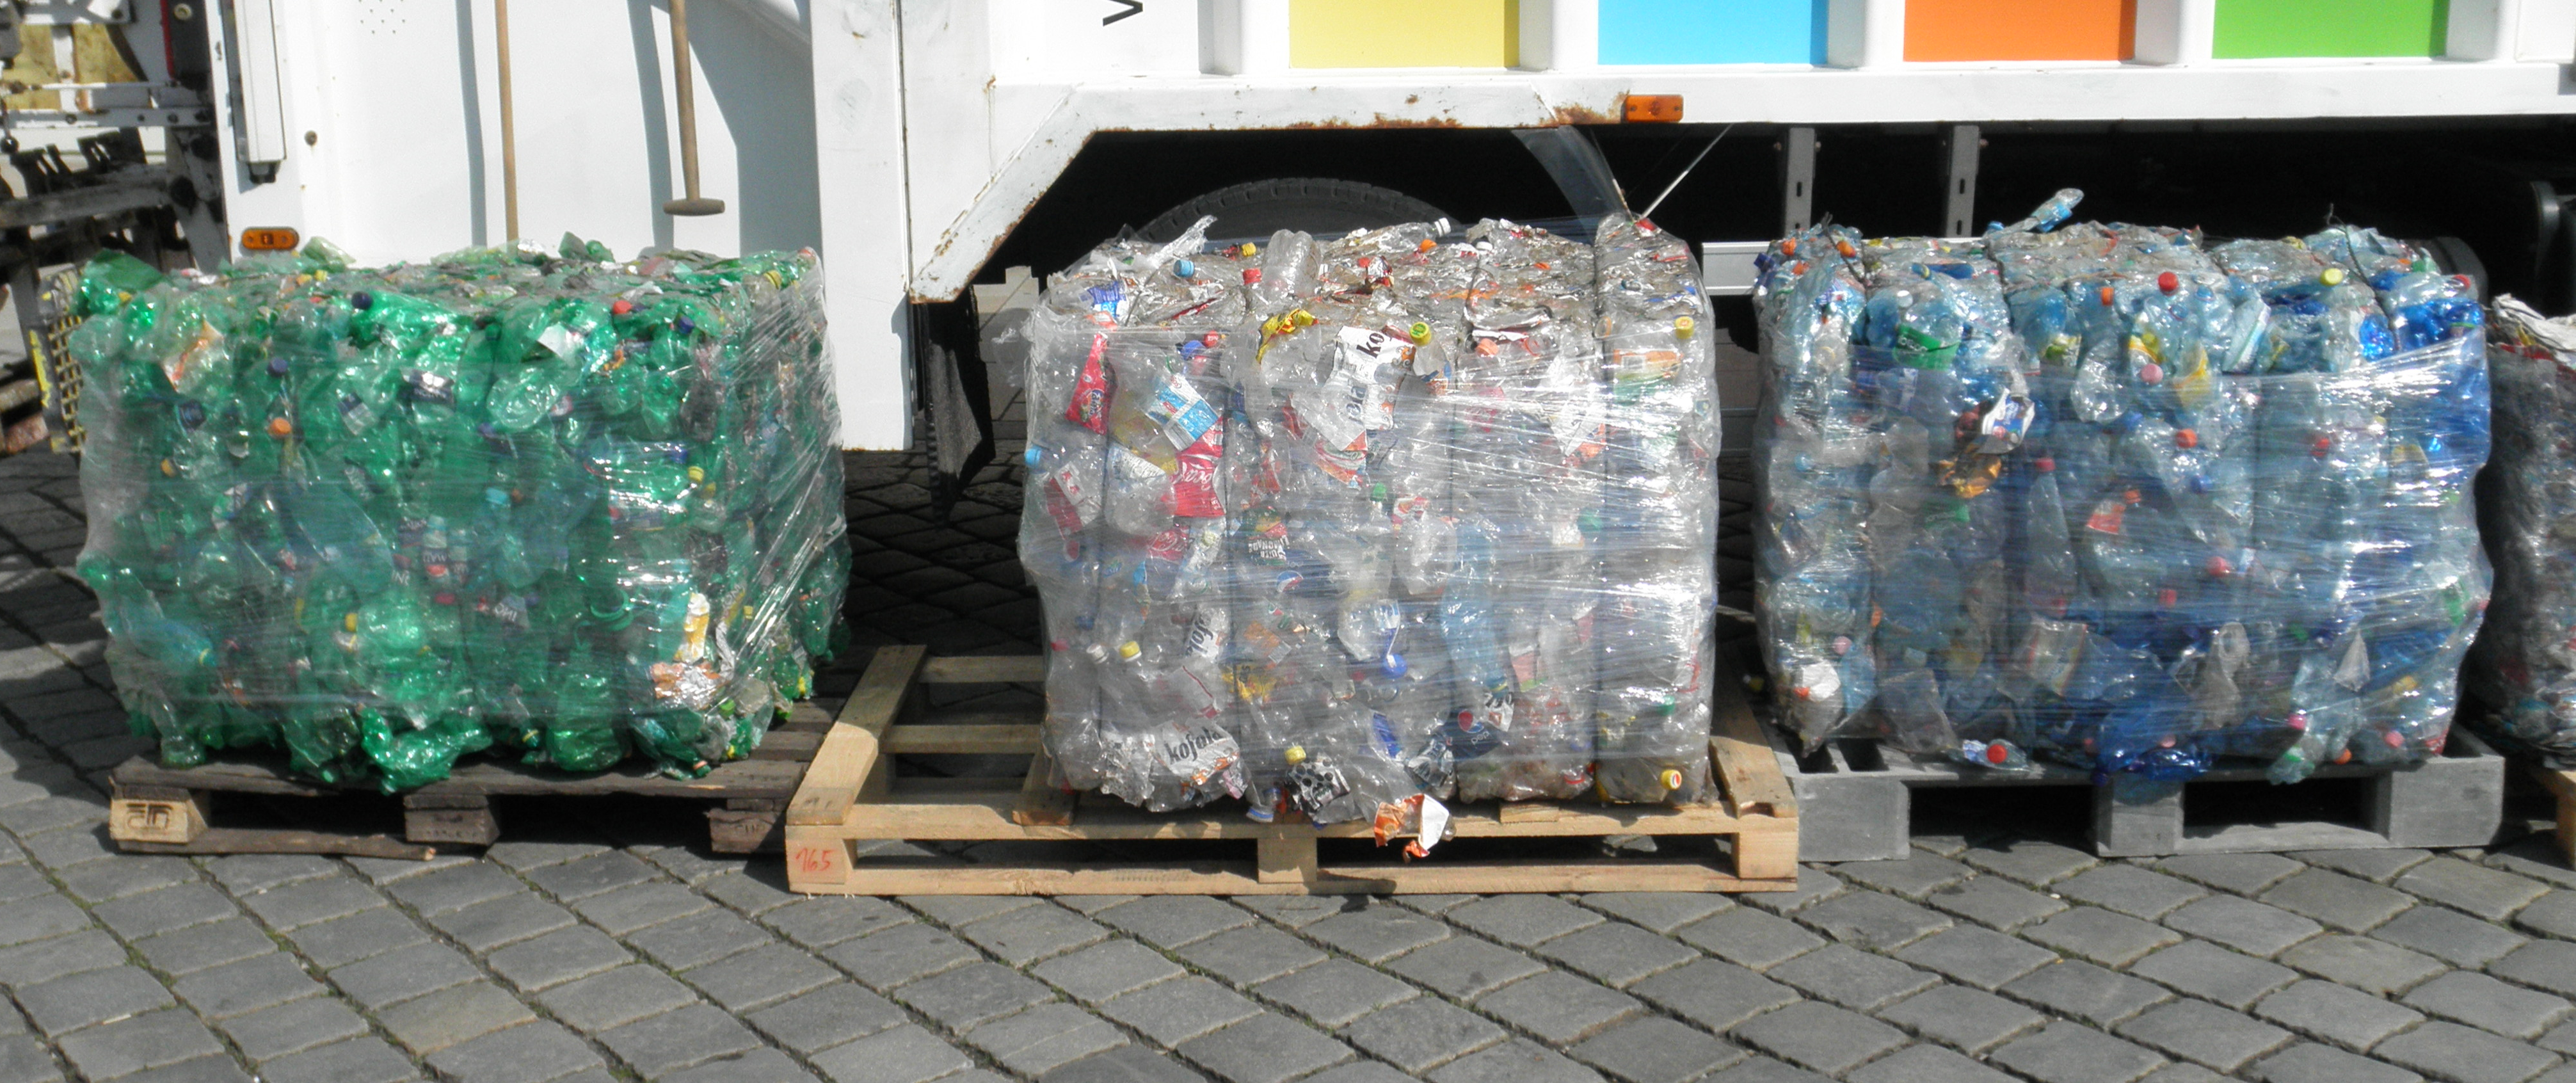 File:Bales of PET bottles 4.png - Wikimedia Commons